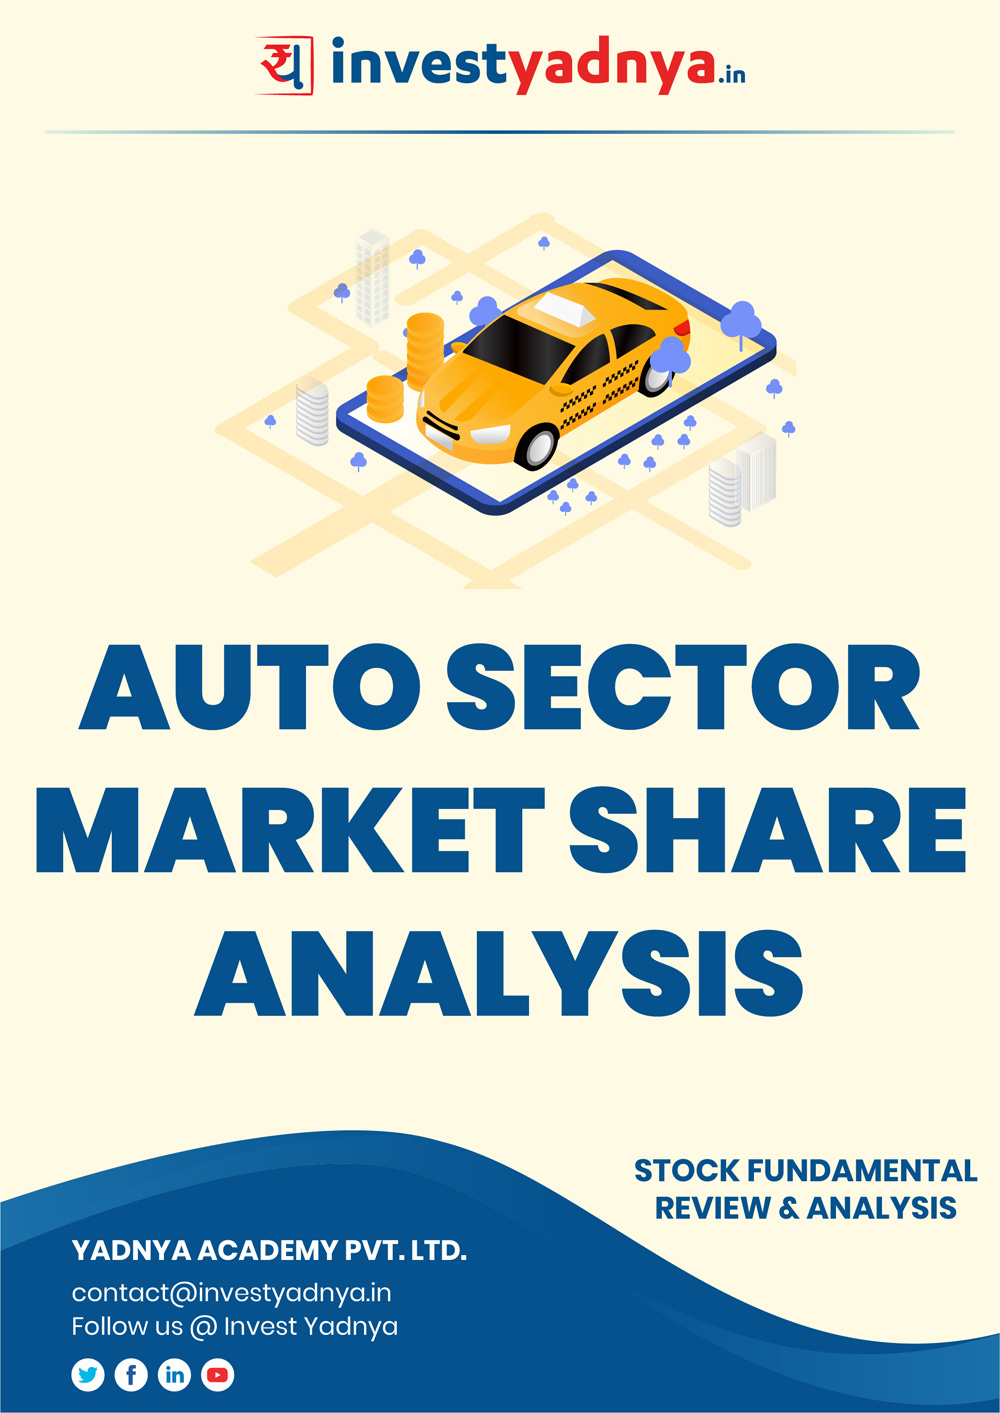 This ebook contains details about all the company Market Shares information of various segments of Auto Sector based on March 2019 data. This ebook gives a good overview of Auto Sector and its major players. It also gives good analysis on who are the major challengers in Auto Sector.